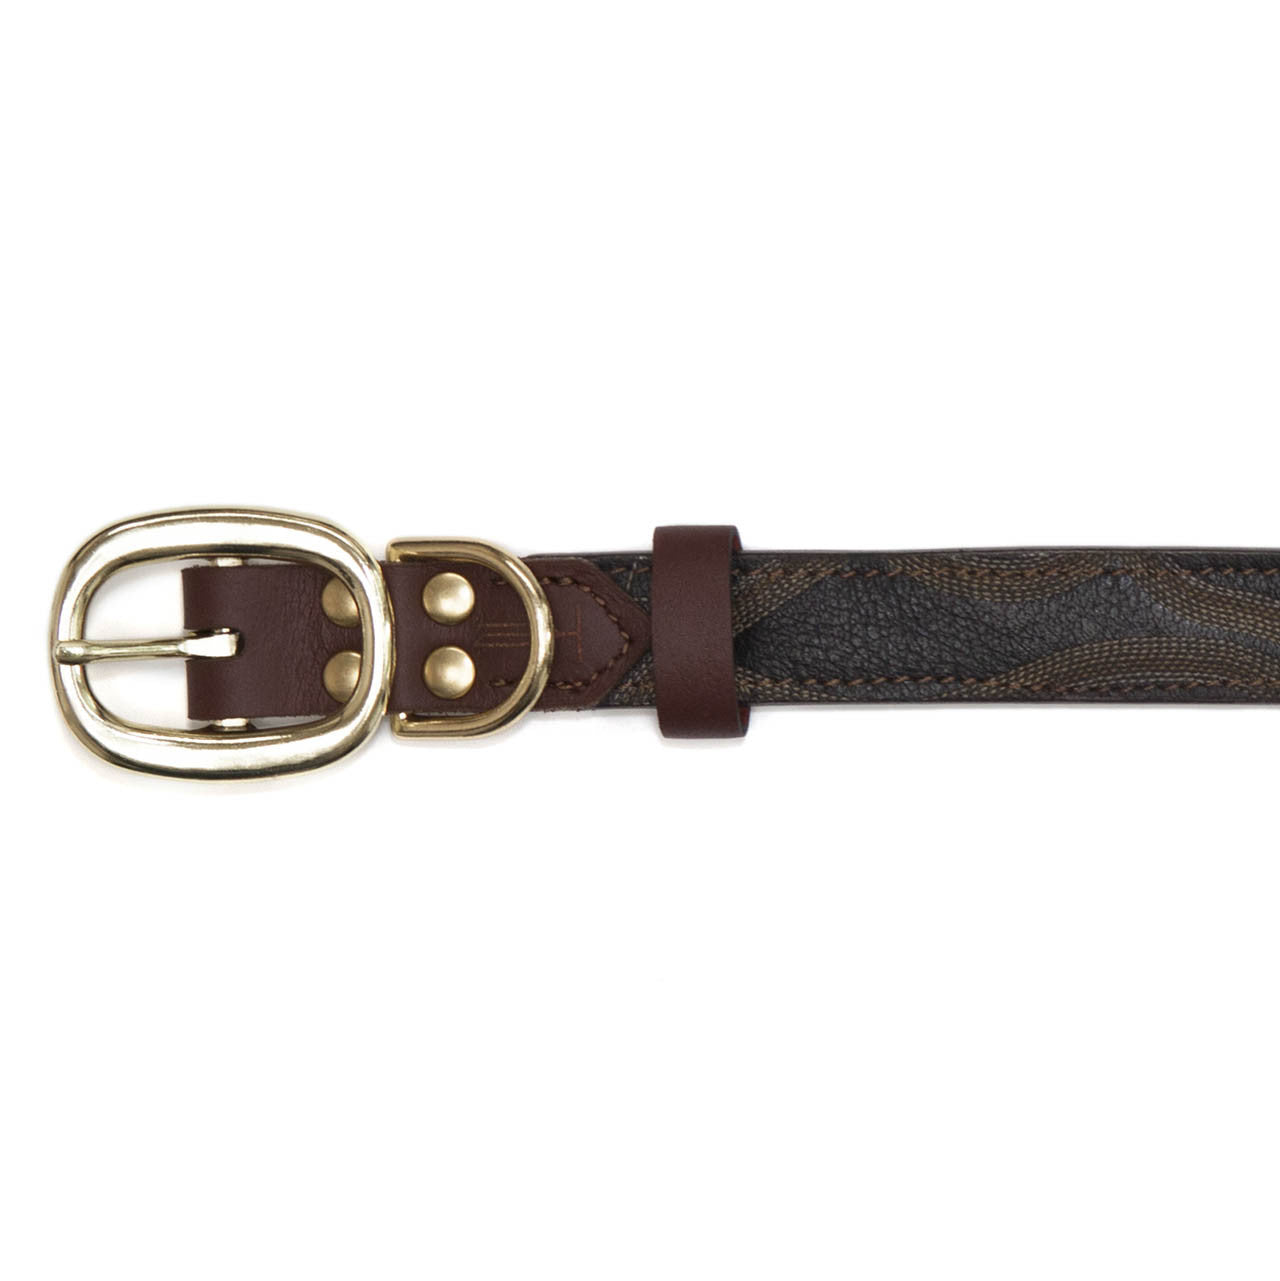 Mahogany Brown Dog Collar with Black Leather + Tan/Light Brown Stitching (buckle)